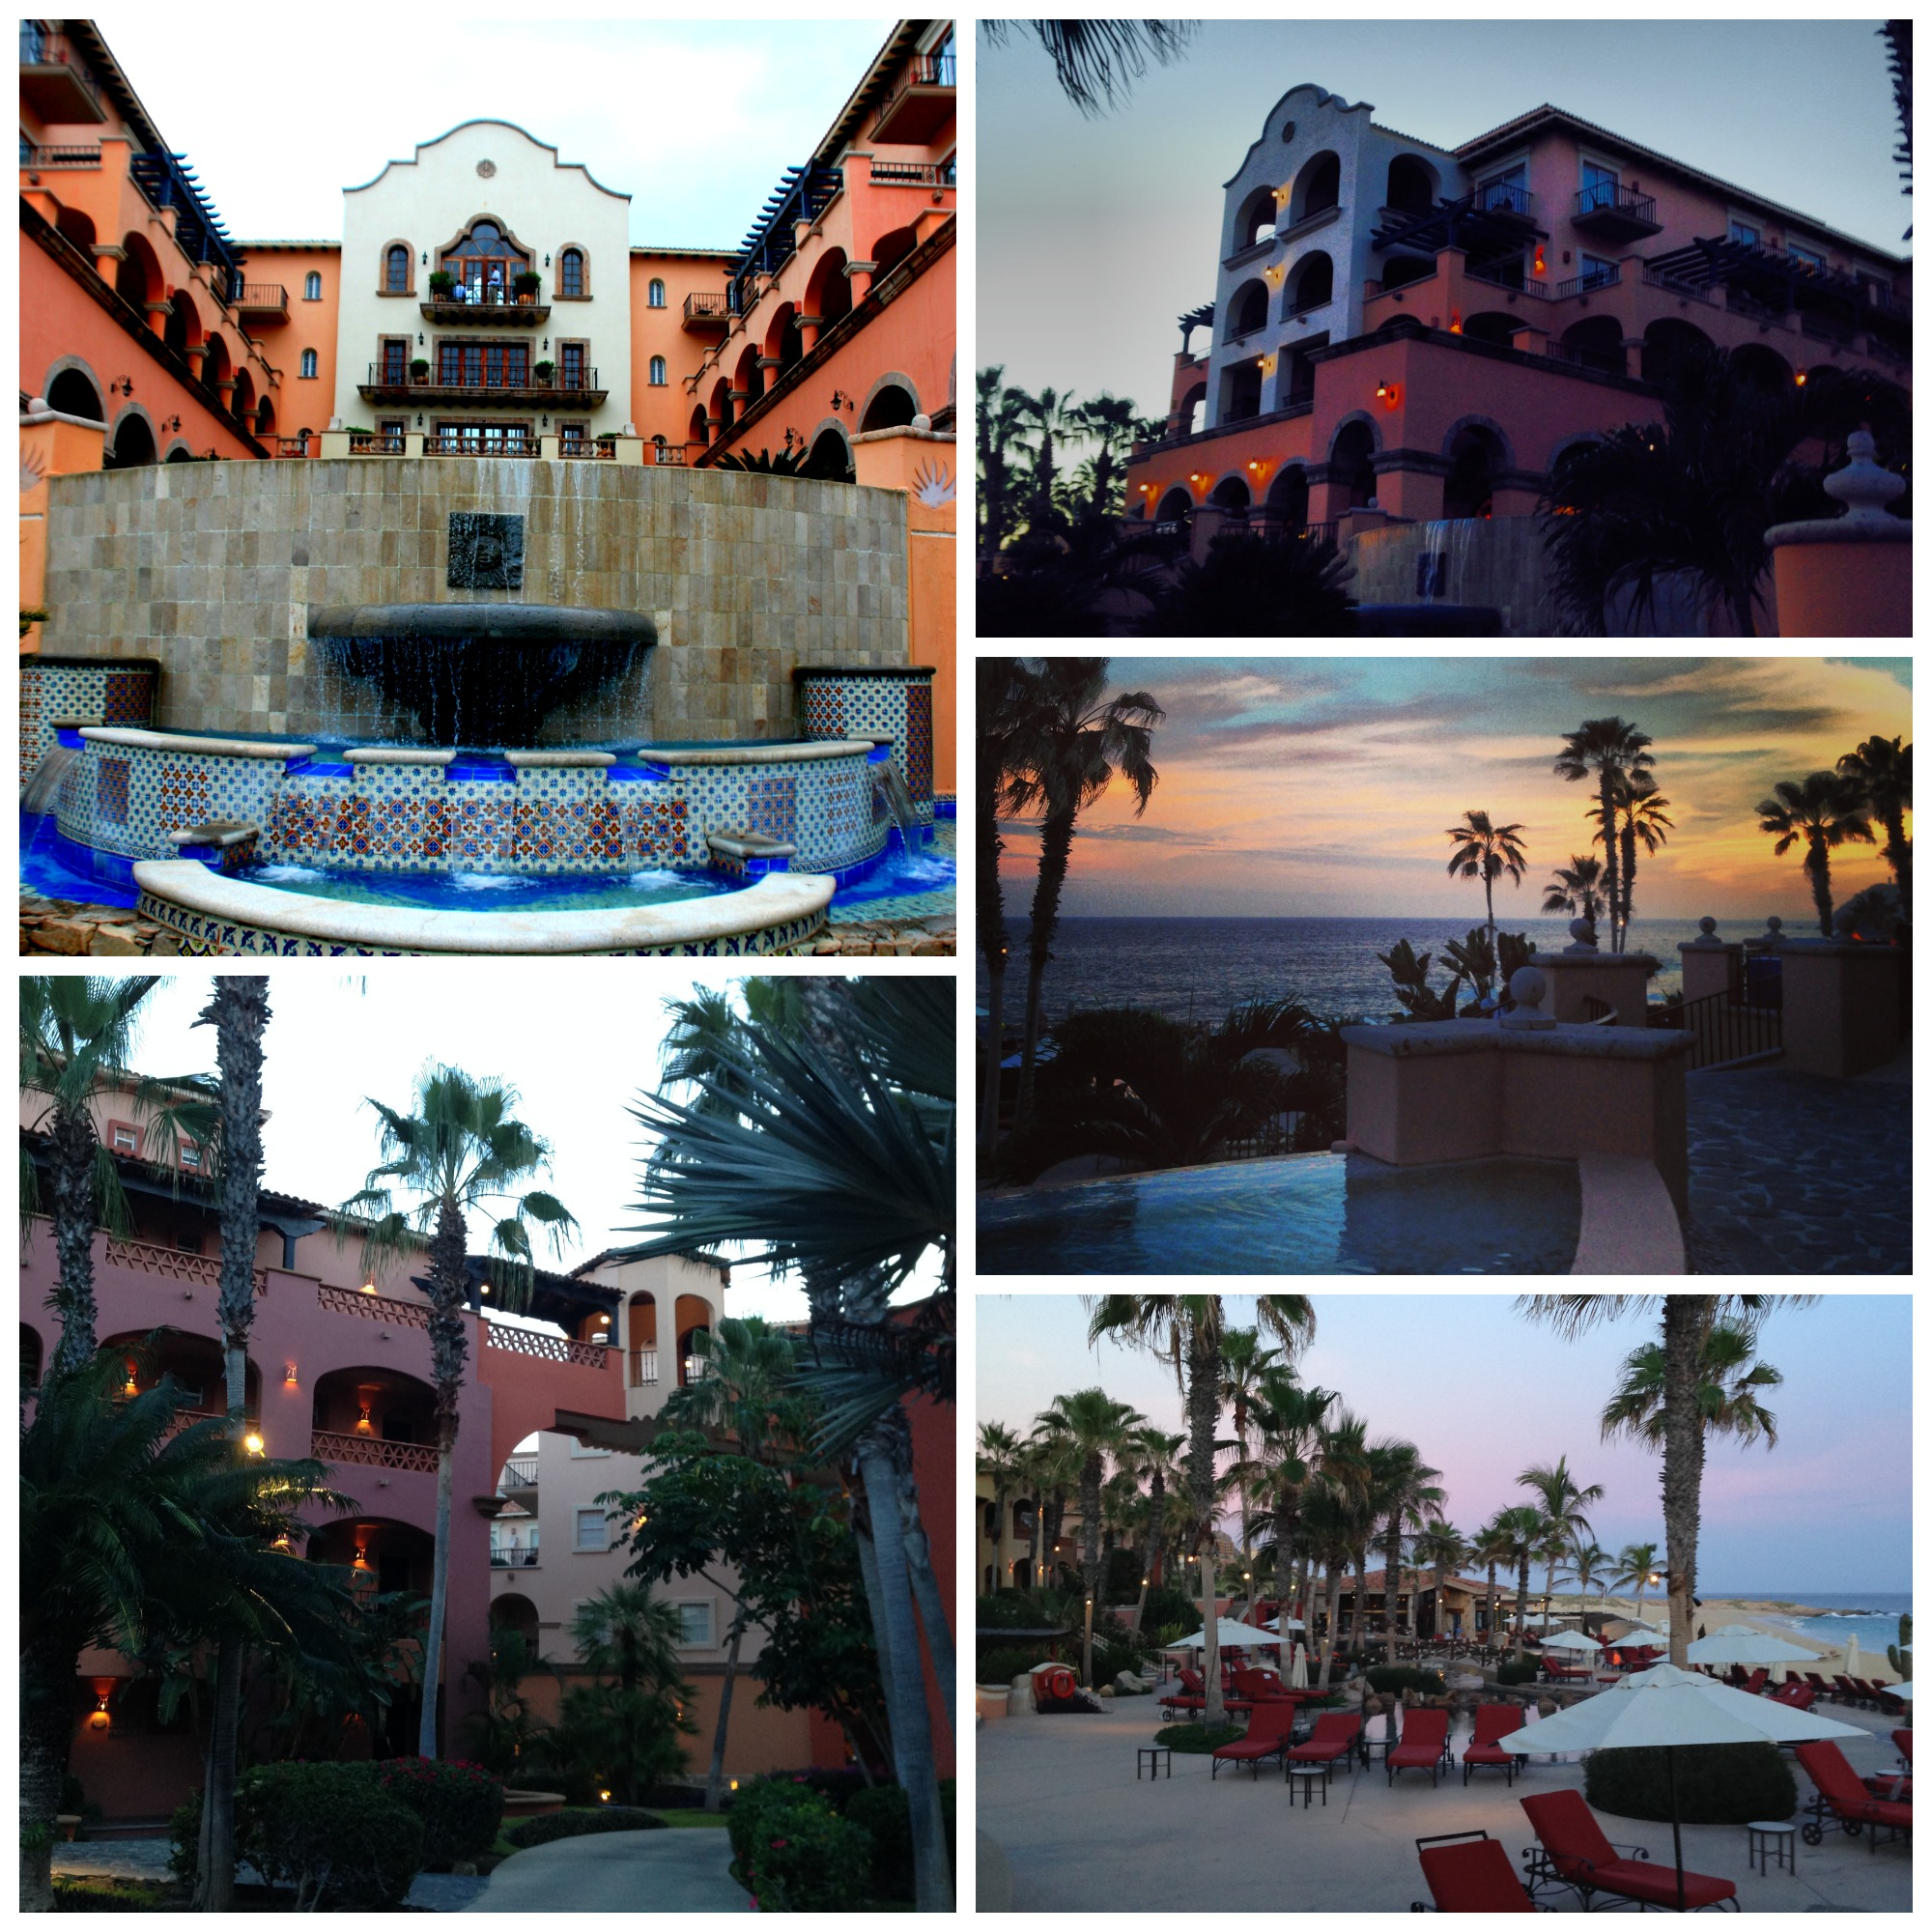 The Sheraton Hacienda Collage